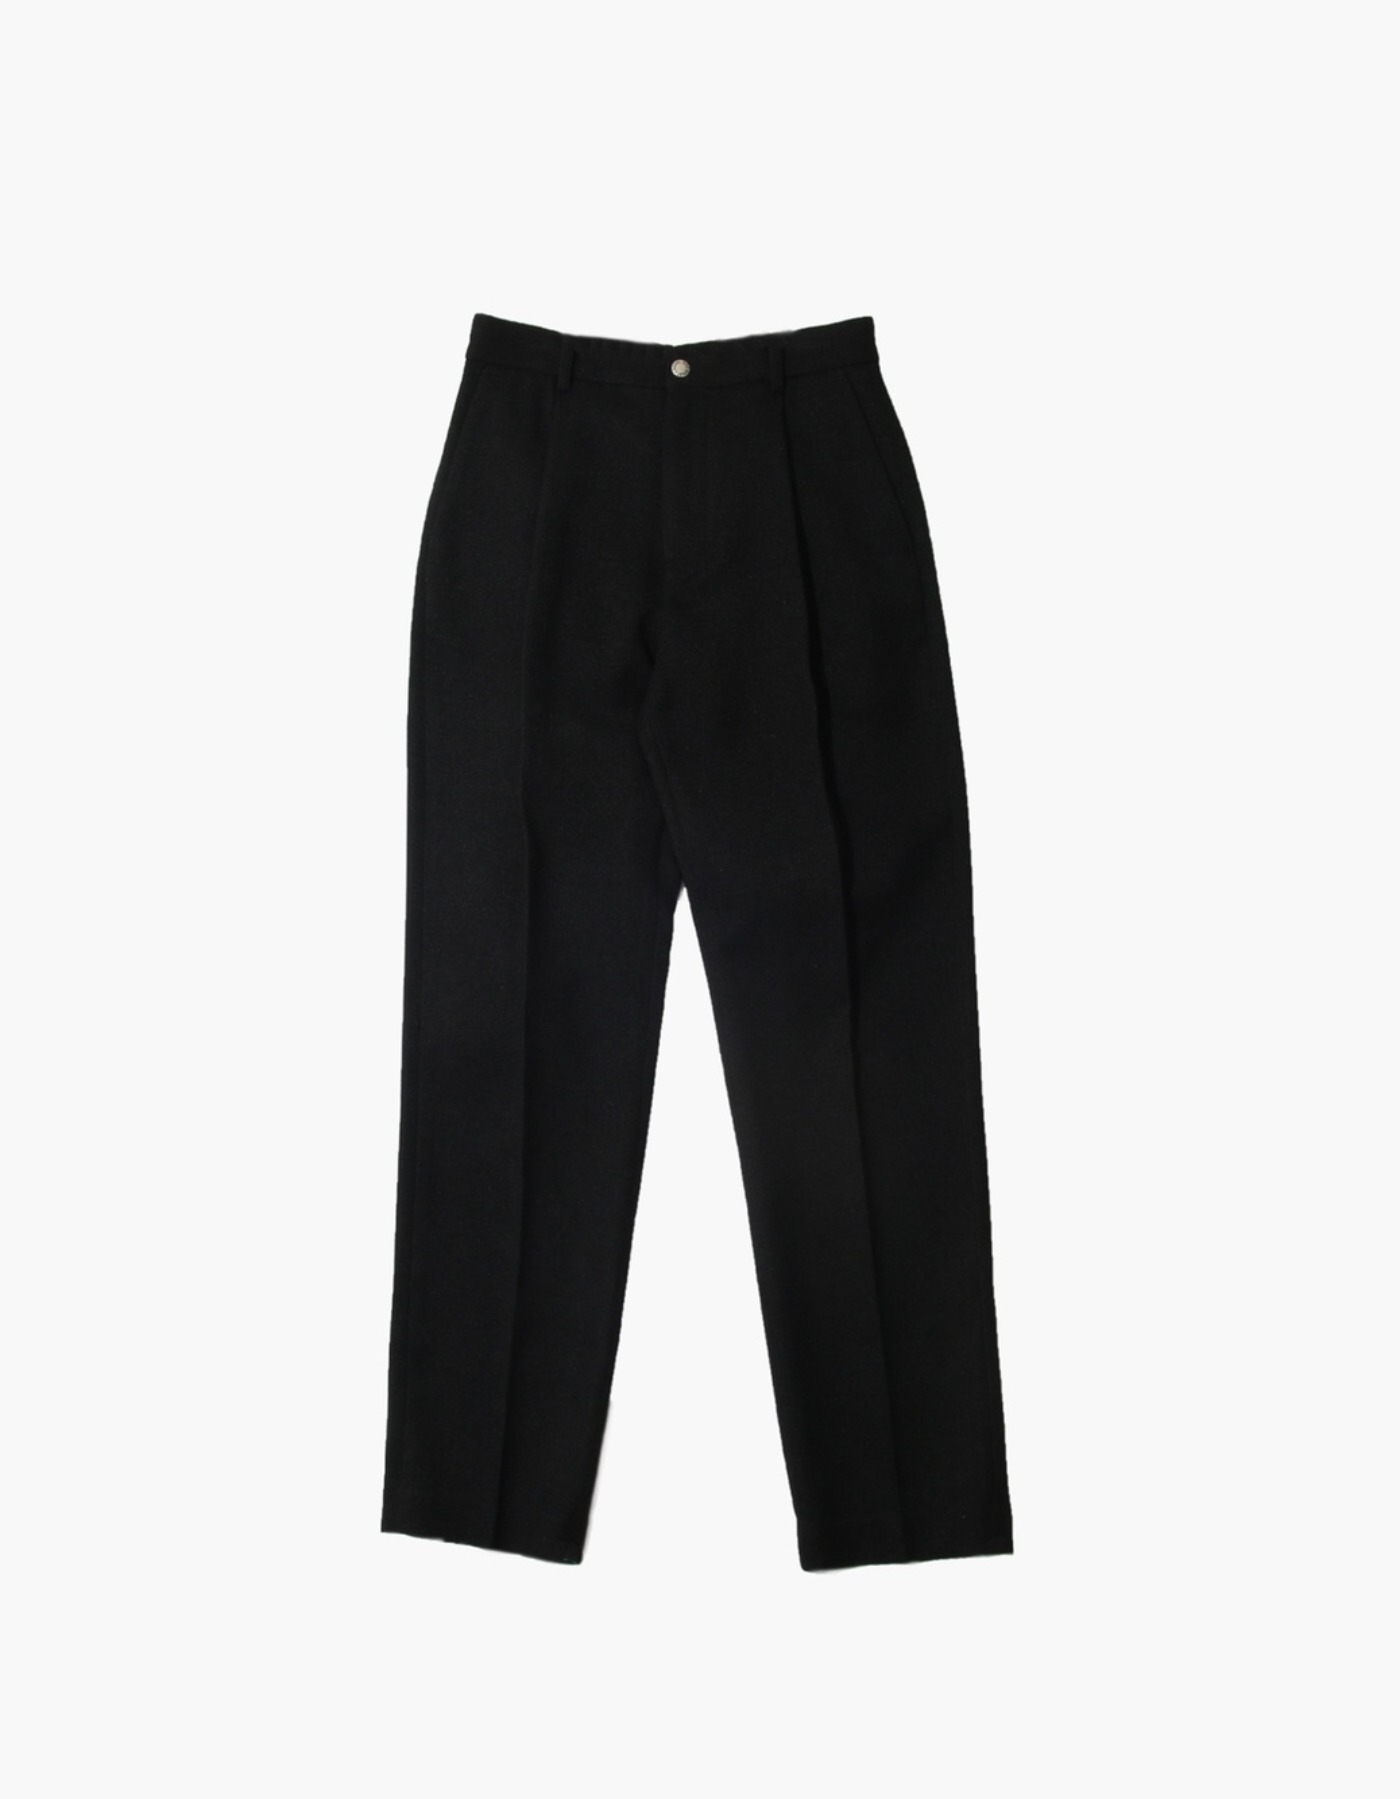 FAUX WOOL PANTS / BLACK